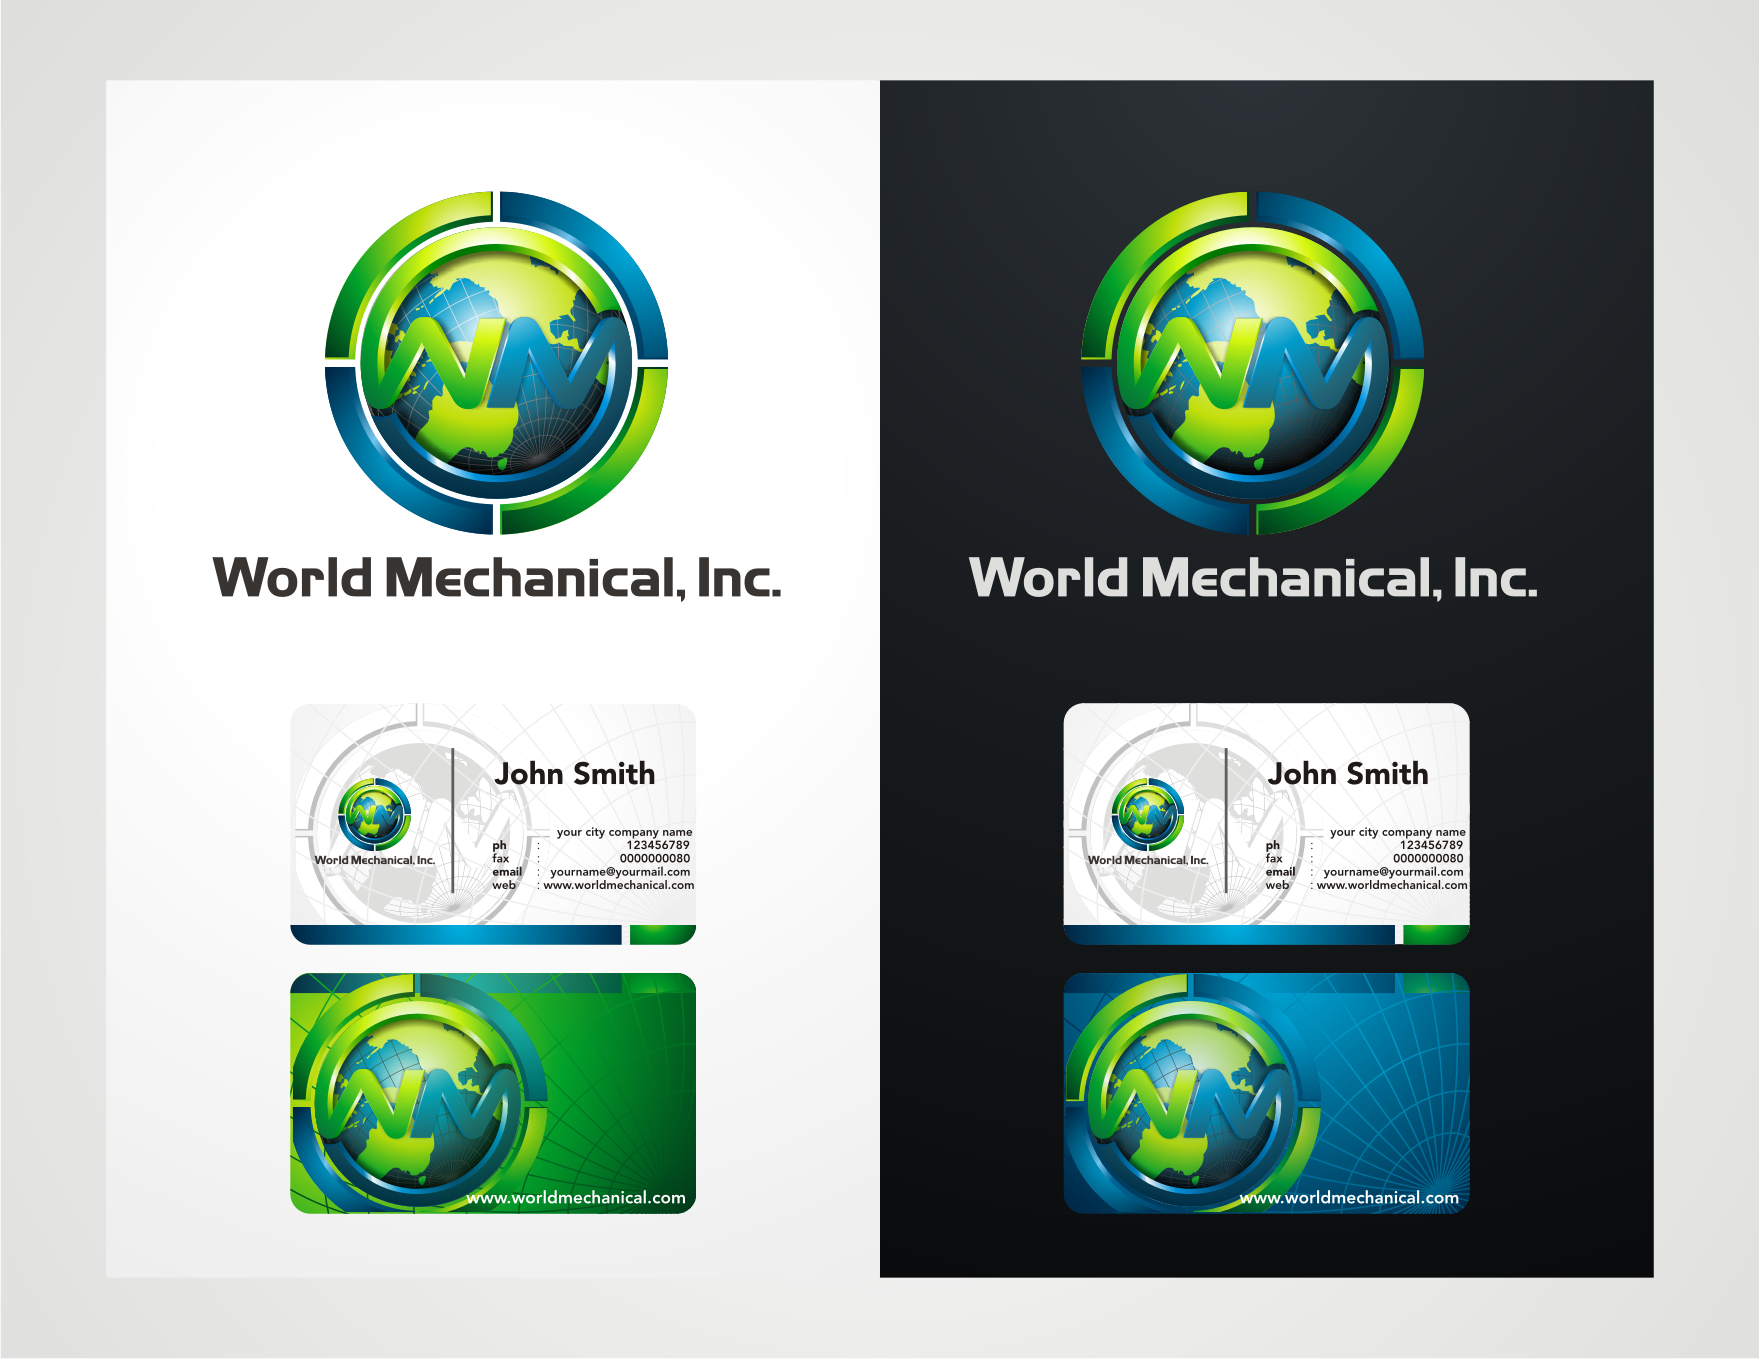 logo and business card for World Mechanical, Inc.